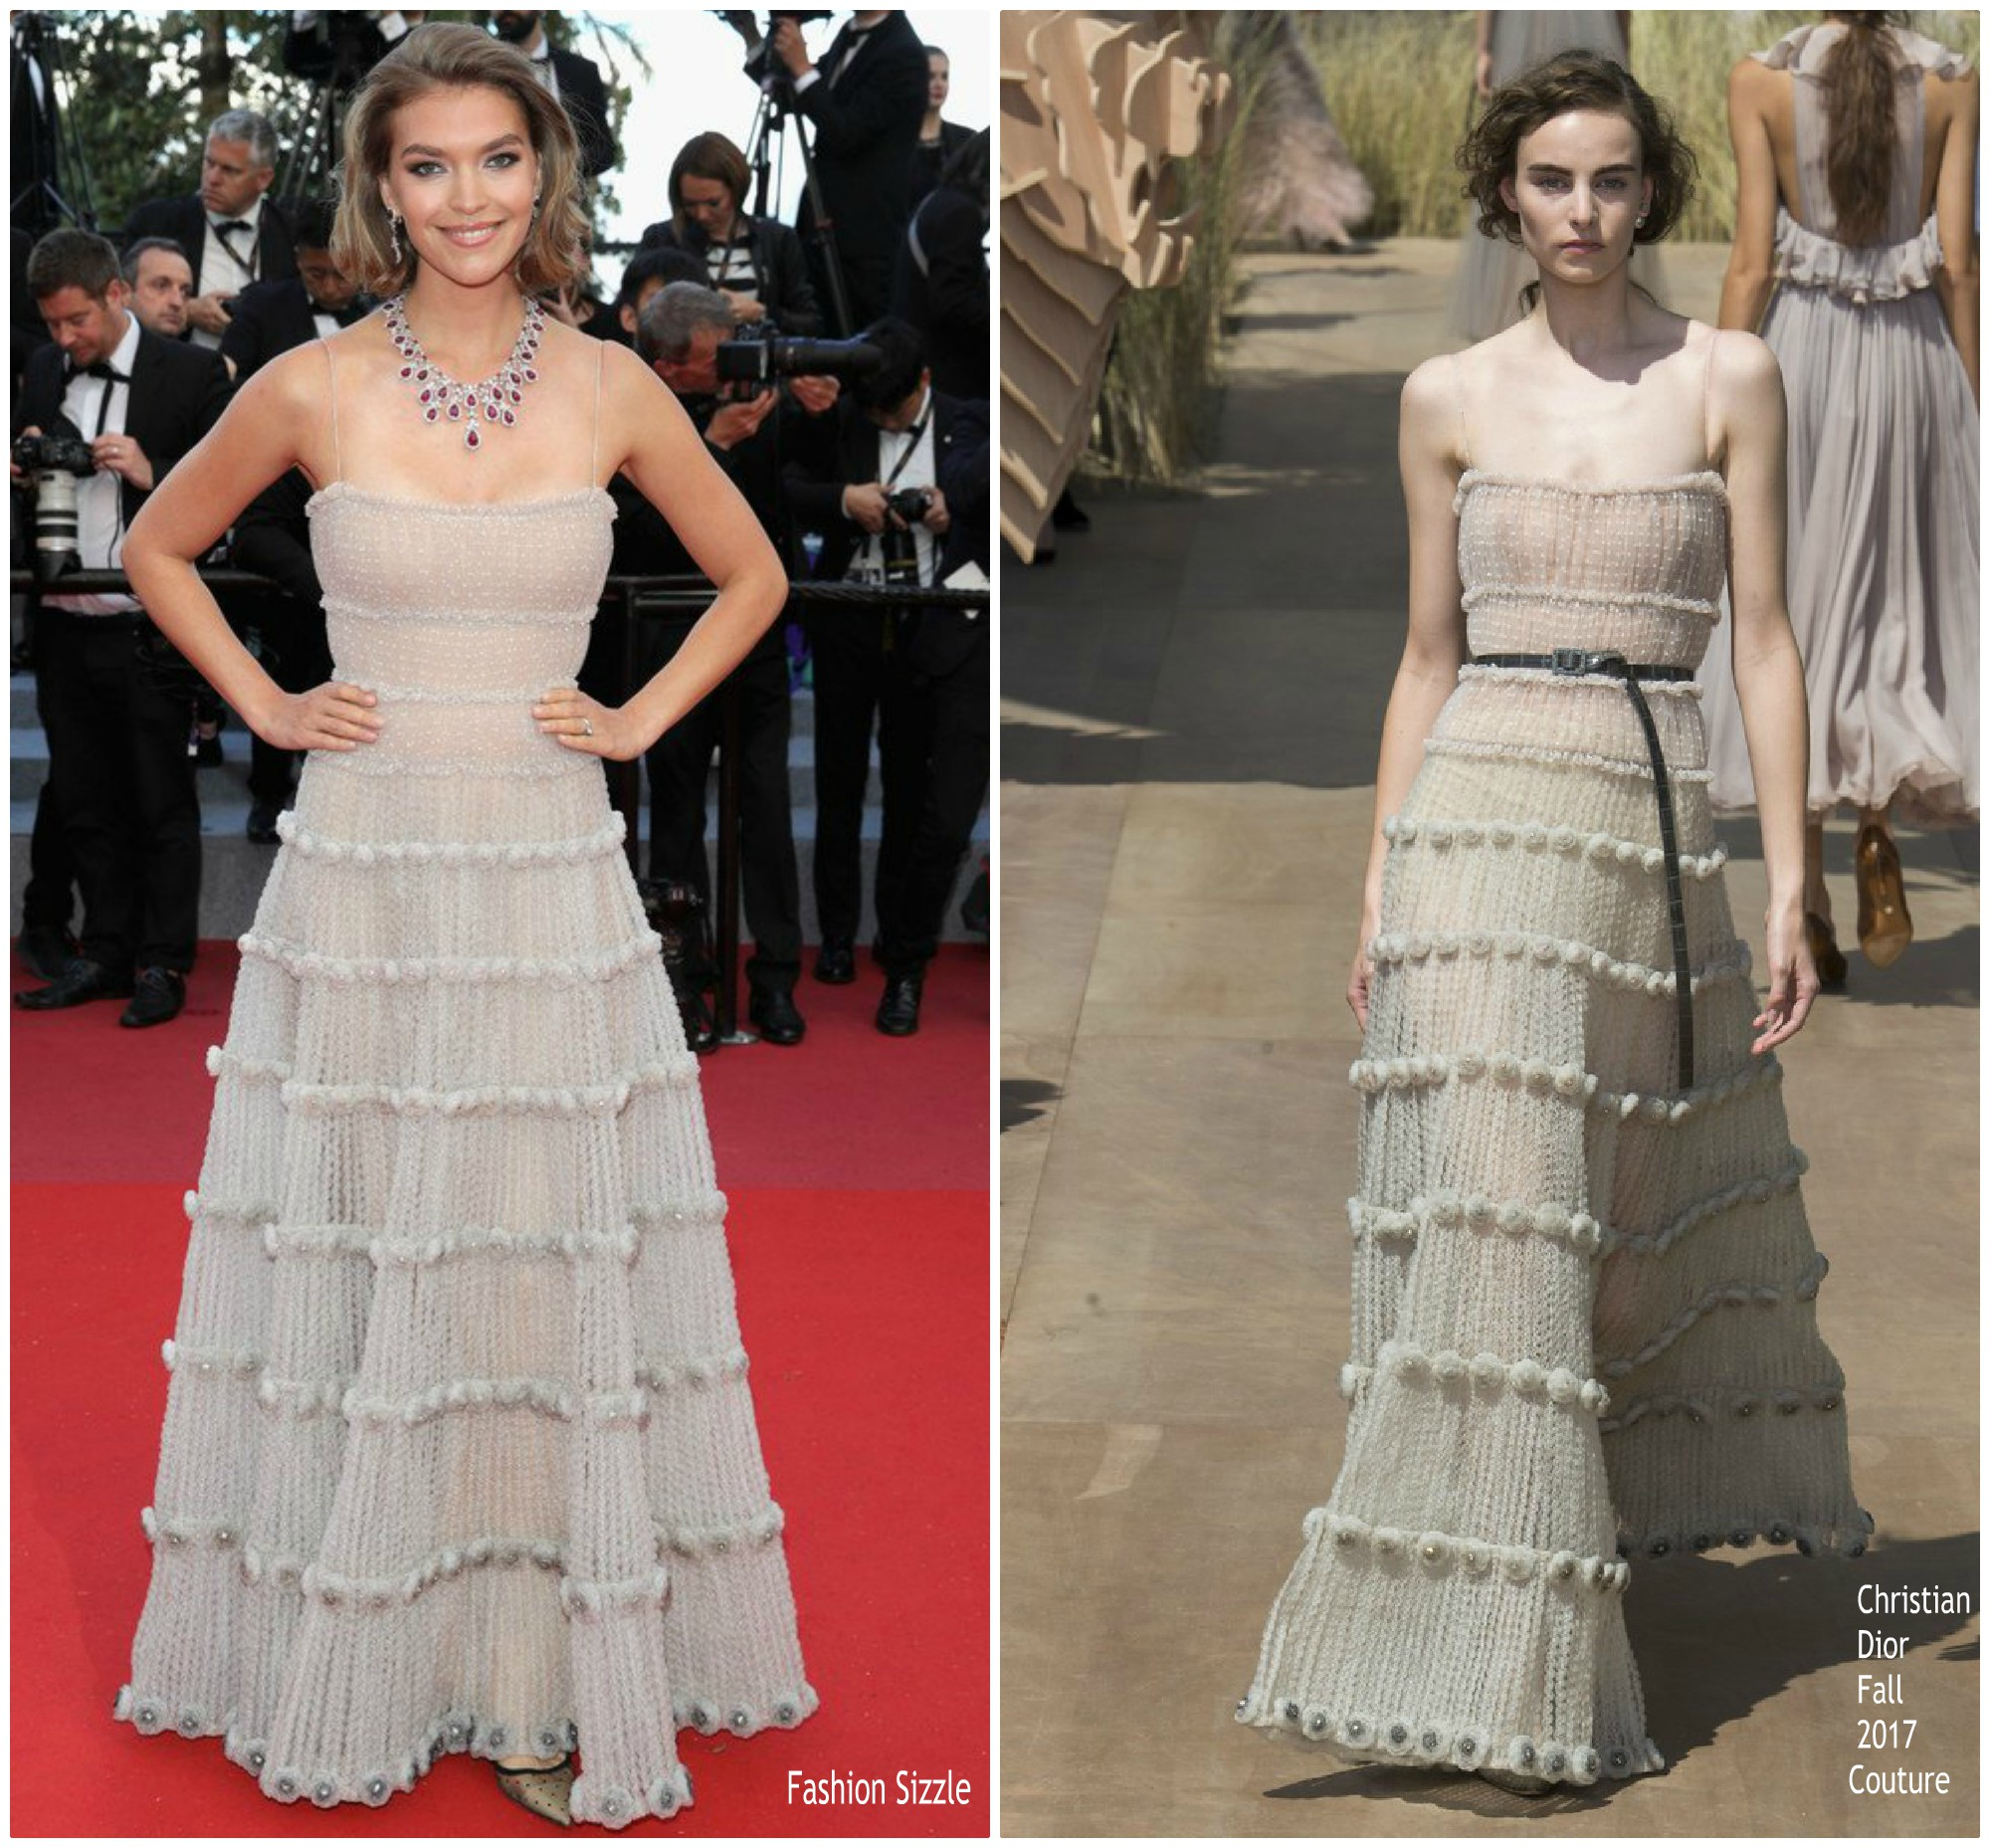 arizona-muse-in-christian-dior-couture0sink-or-swim-le-grand-bain-cannes-film-festival-premiere